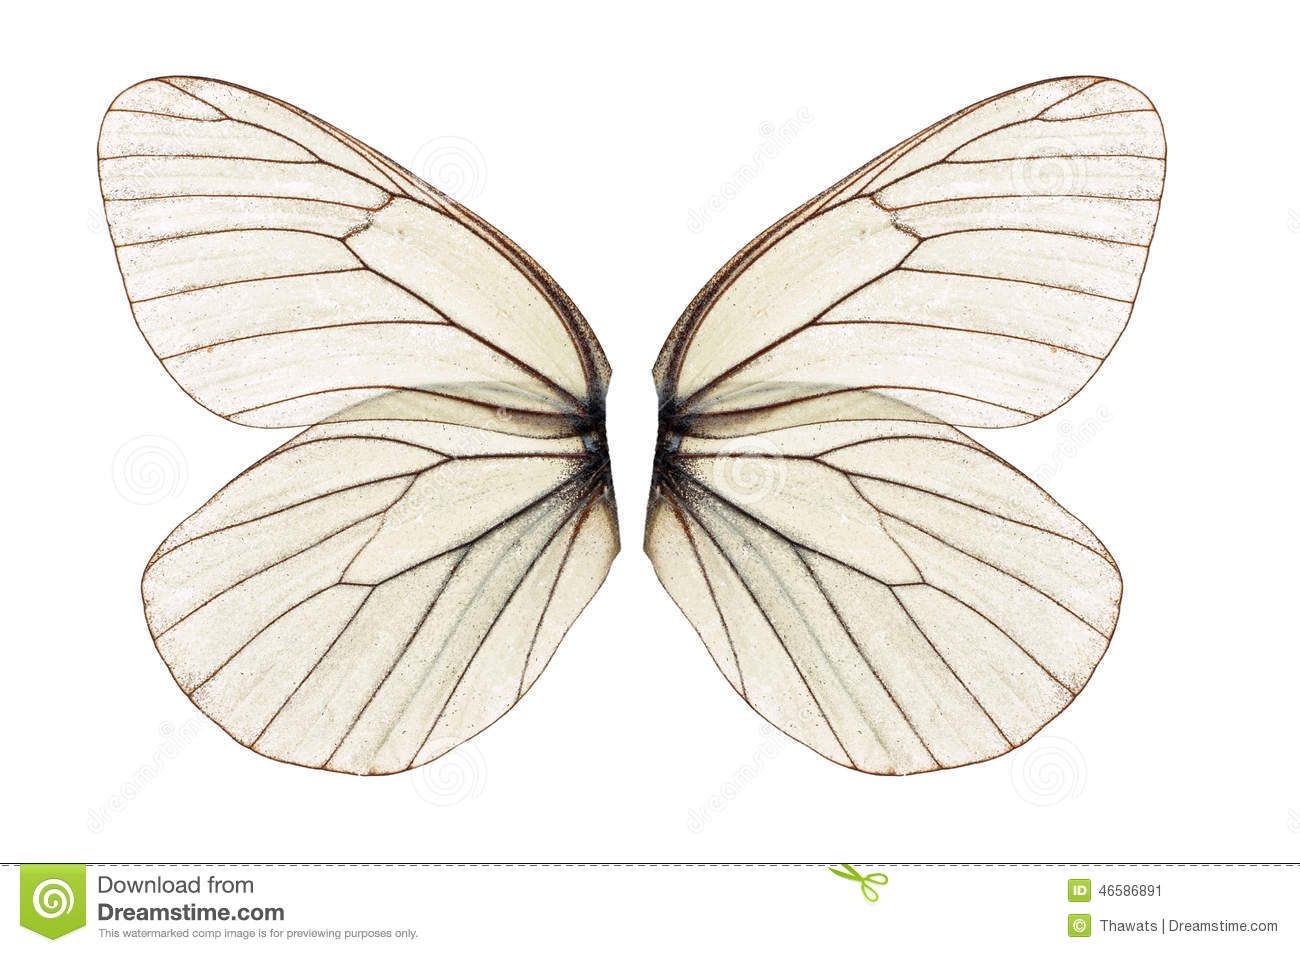 2 Transparent Png Beautiful Child Fairytale Butterfly Fairy White Sparkle Wings Photo Overlay Prop For Photographers Instant Download Photo Overlays Overlays Transparent Overlays Picsart